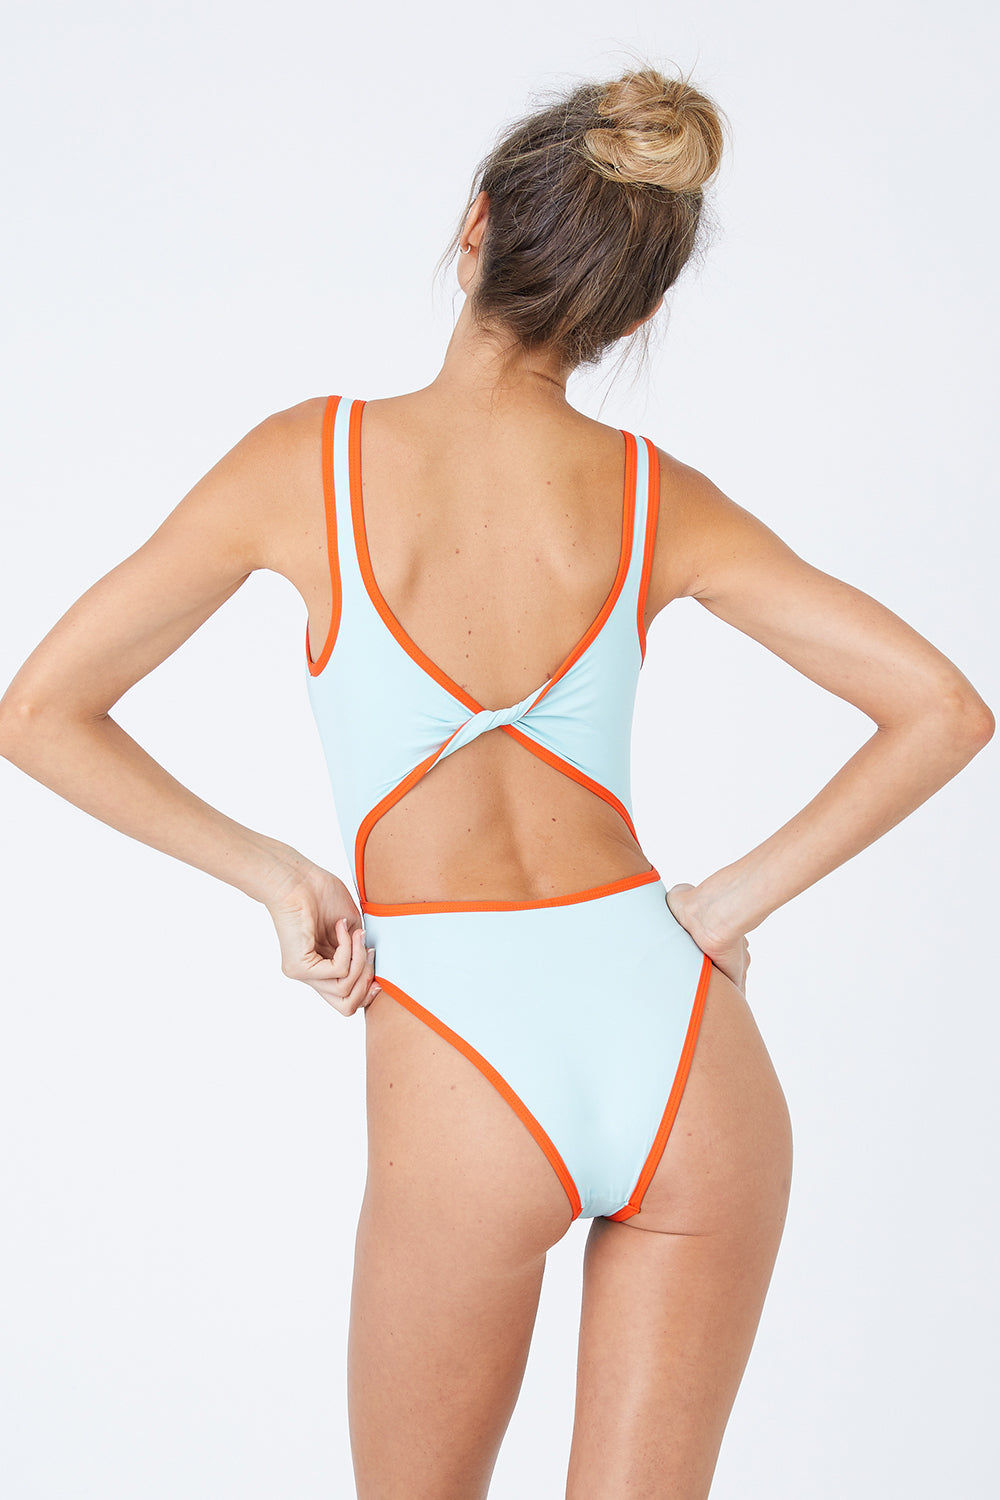 L SPACE Kira Center Cut Out One Piece Swimsuit - Light Turquoise One Piece |  Light Turquoise| L Space Kira Center Cut Out One Piece Swimsuit - Light Turquoise.